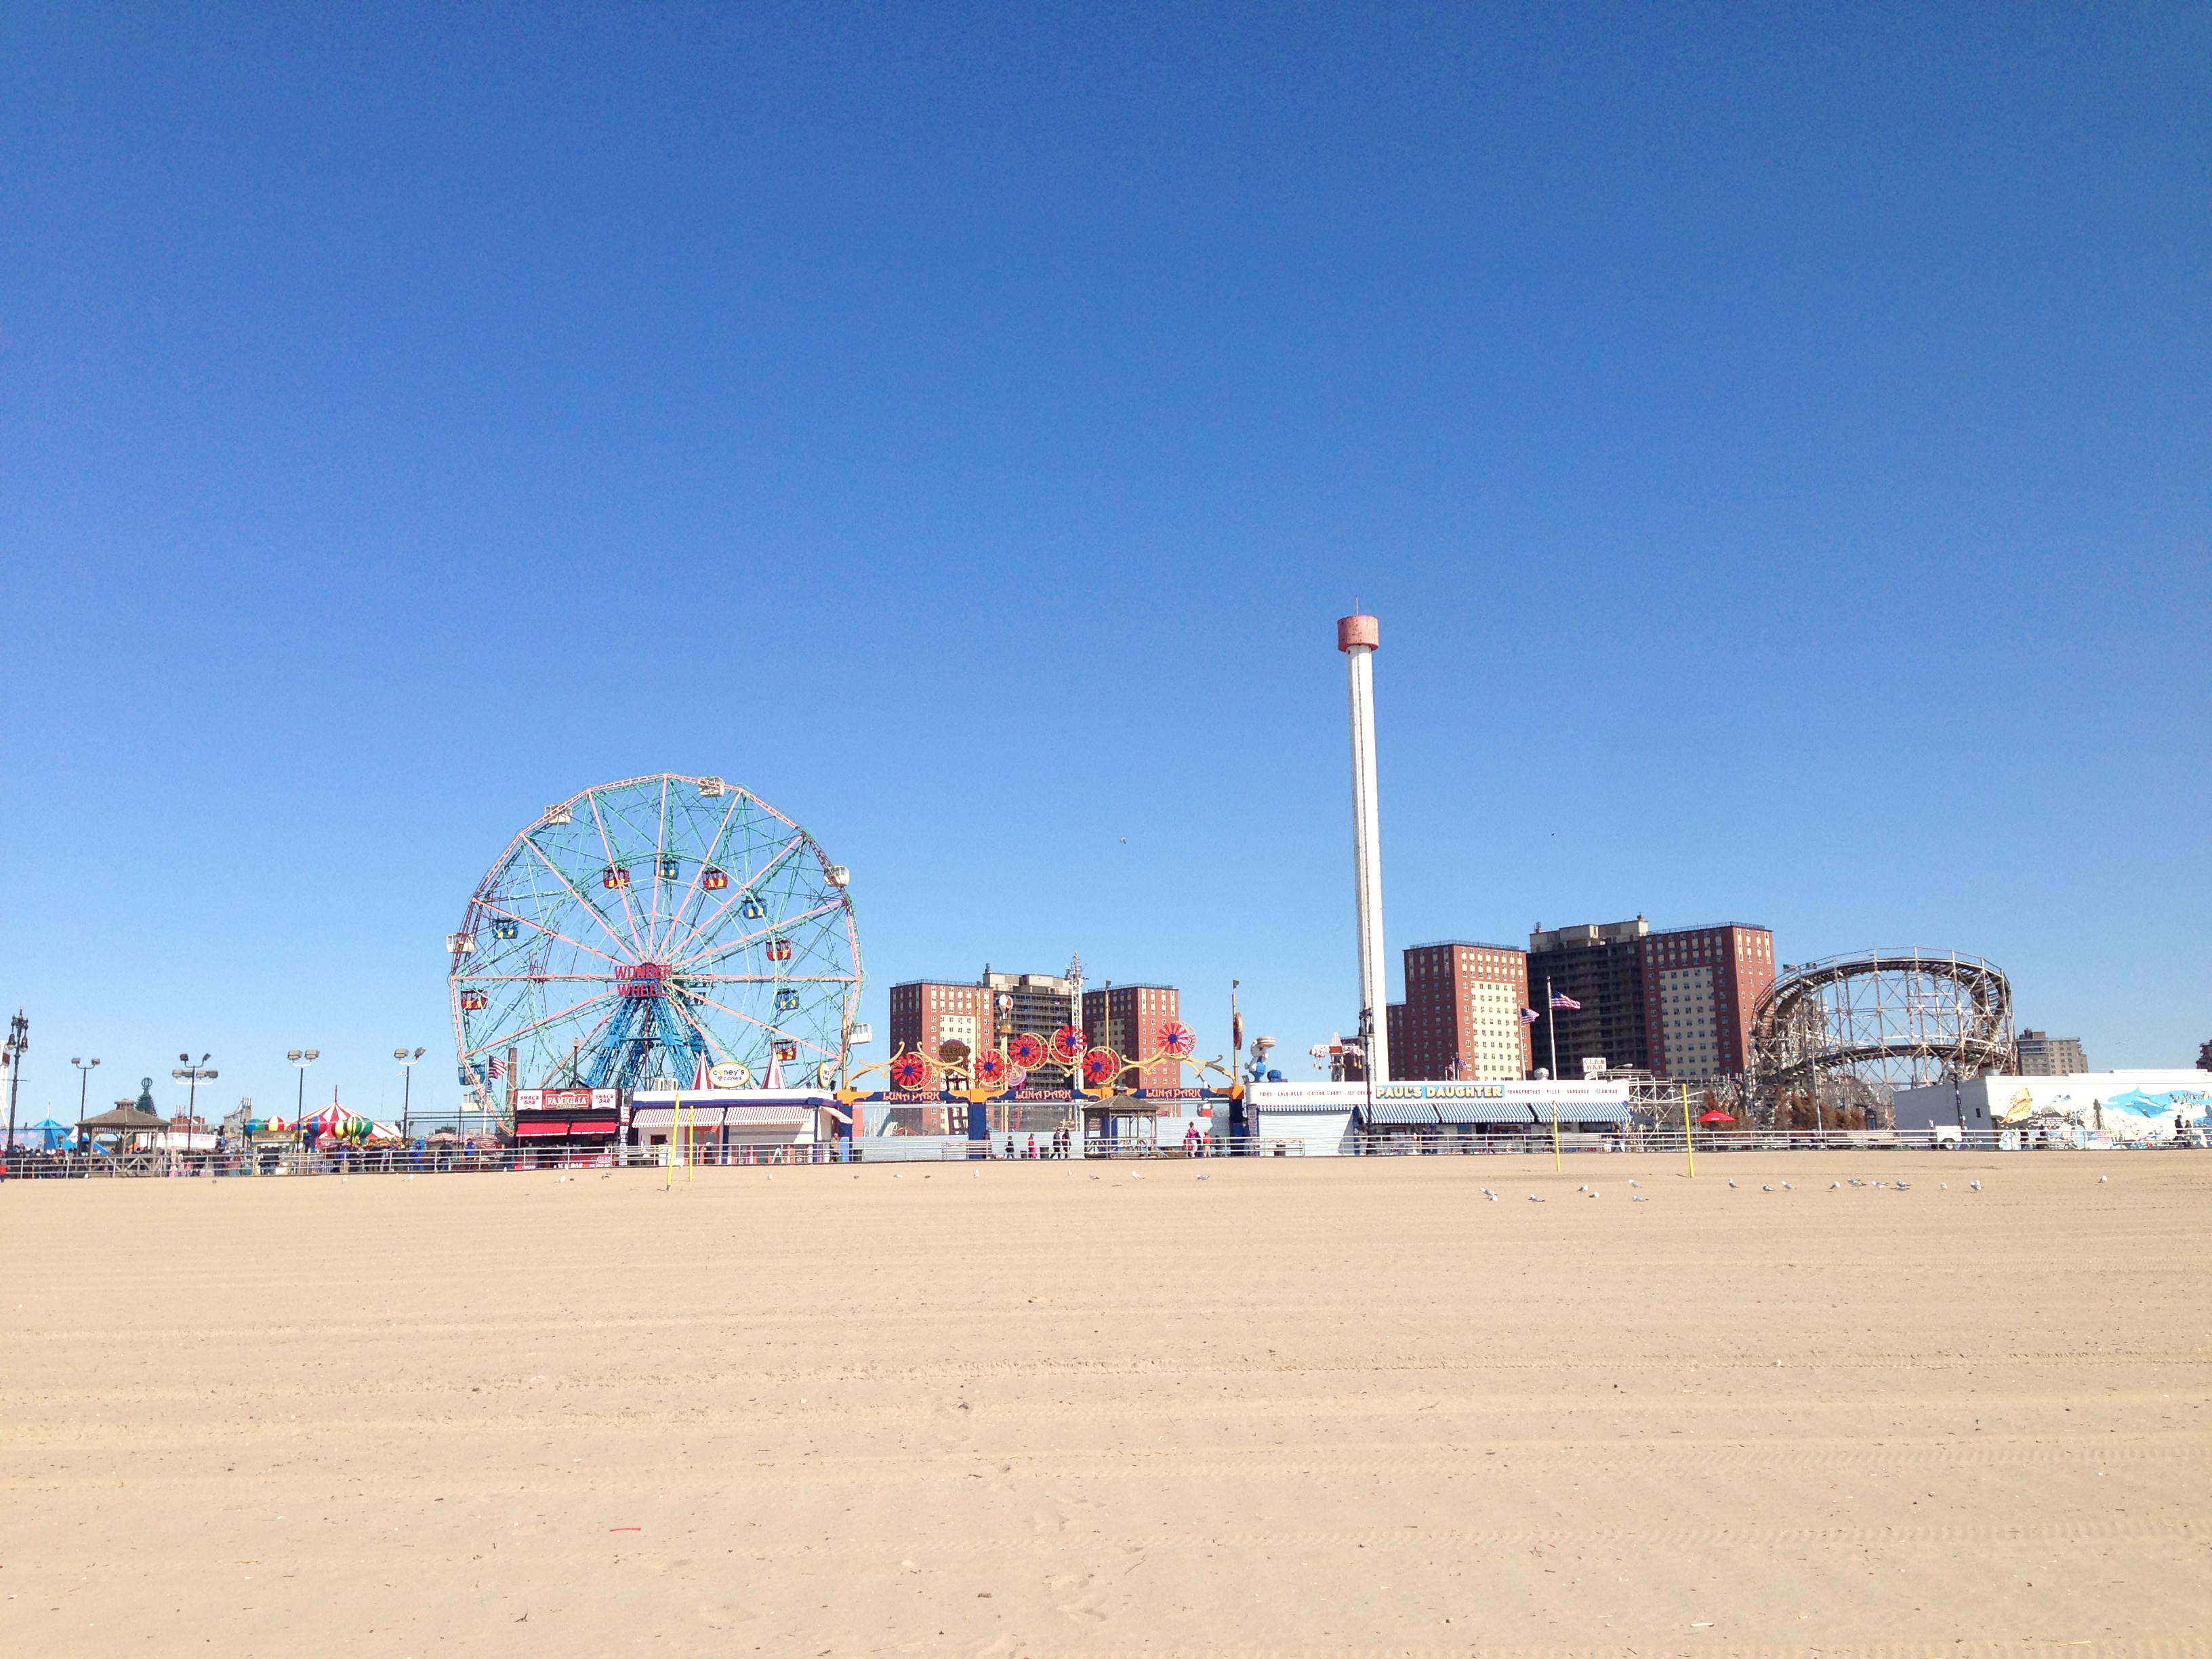 View of Coney Island boardwalk and ferris wheel from the beach